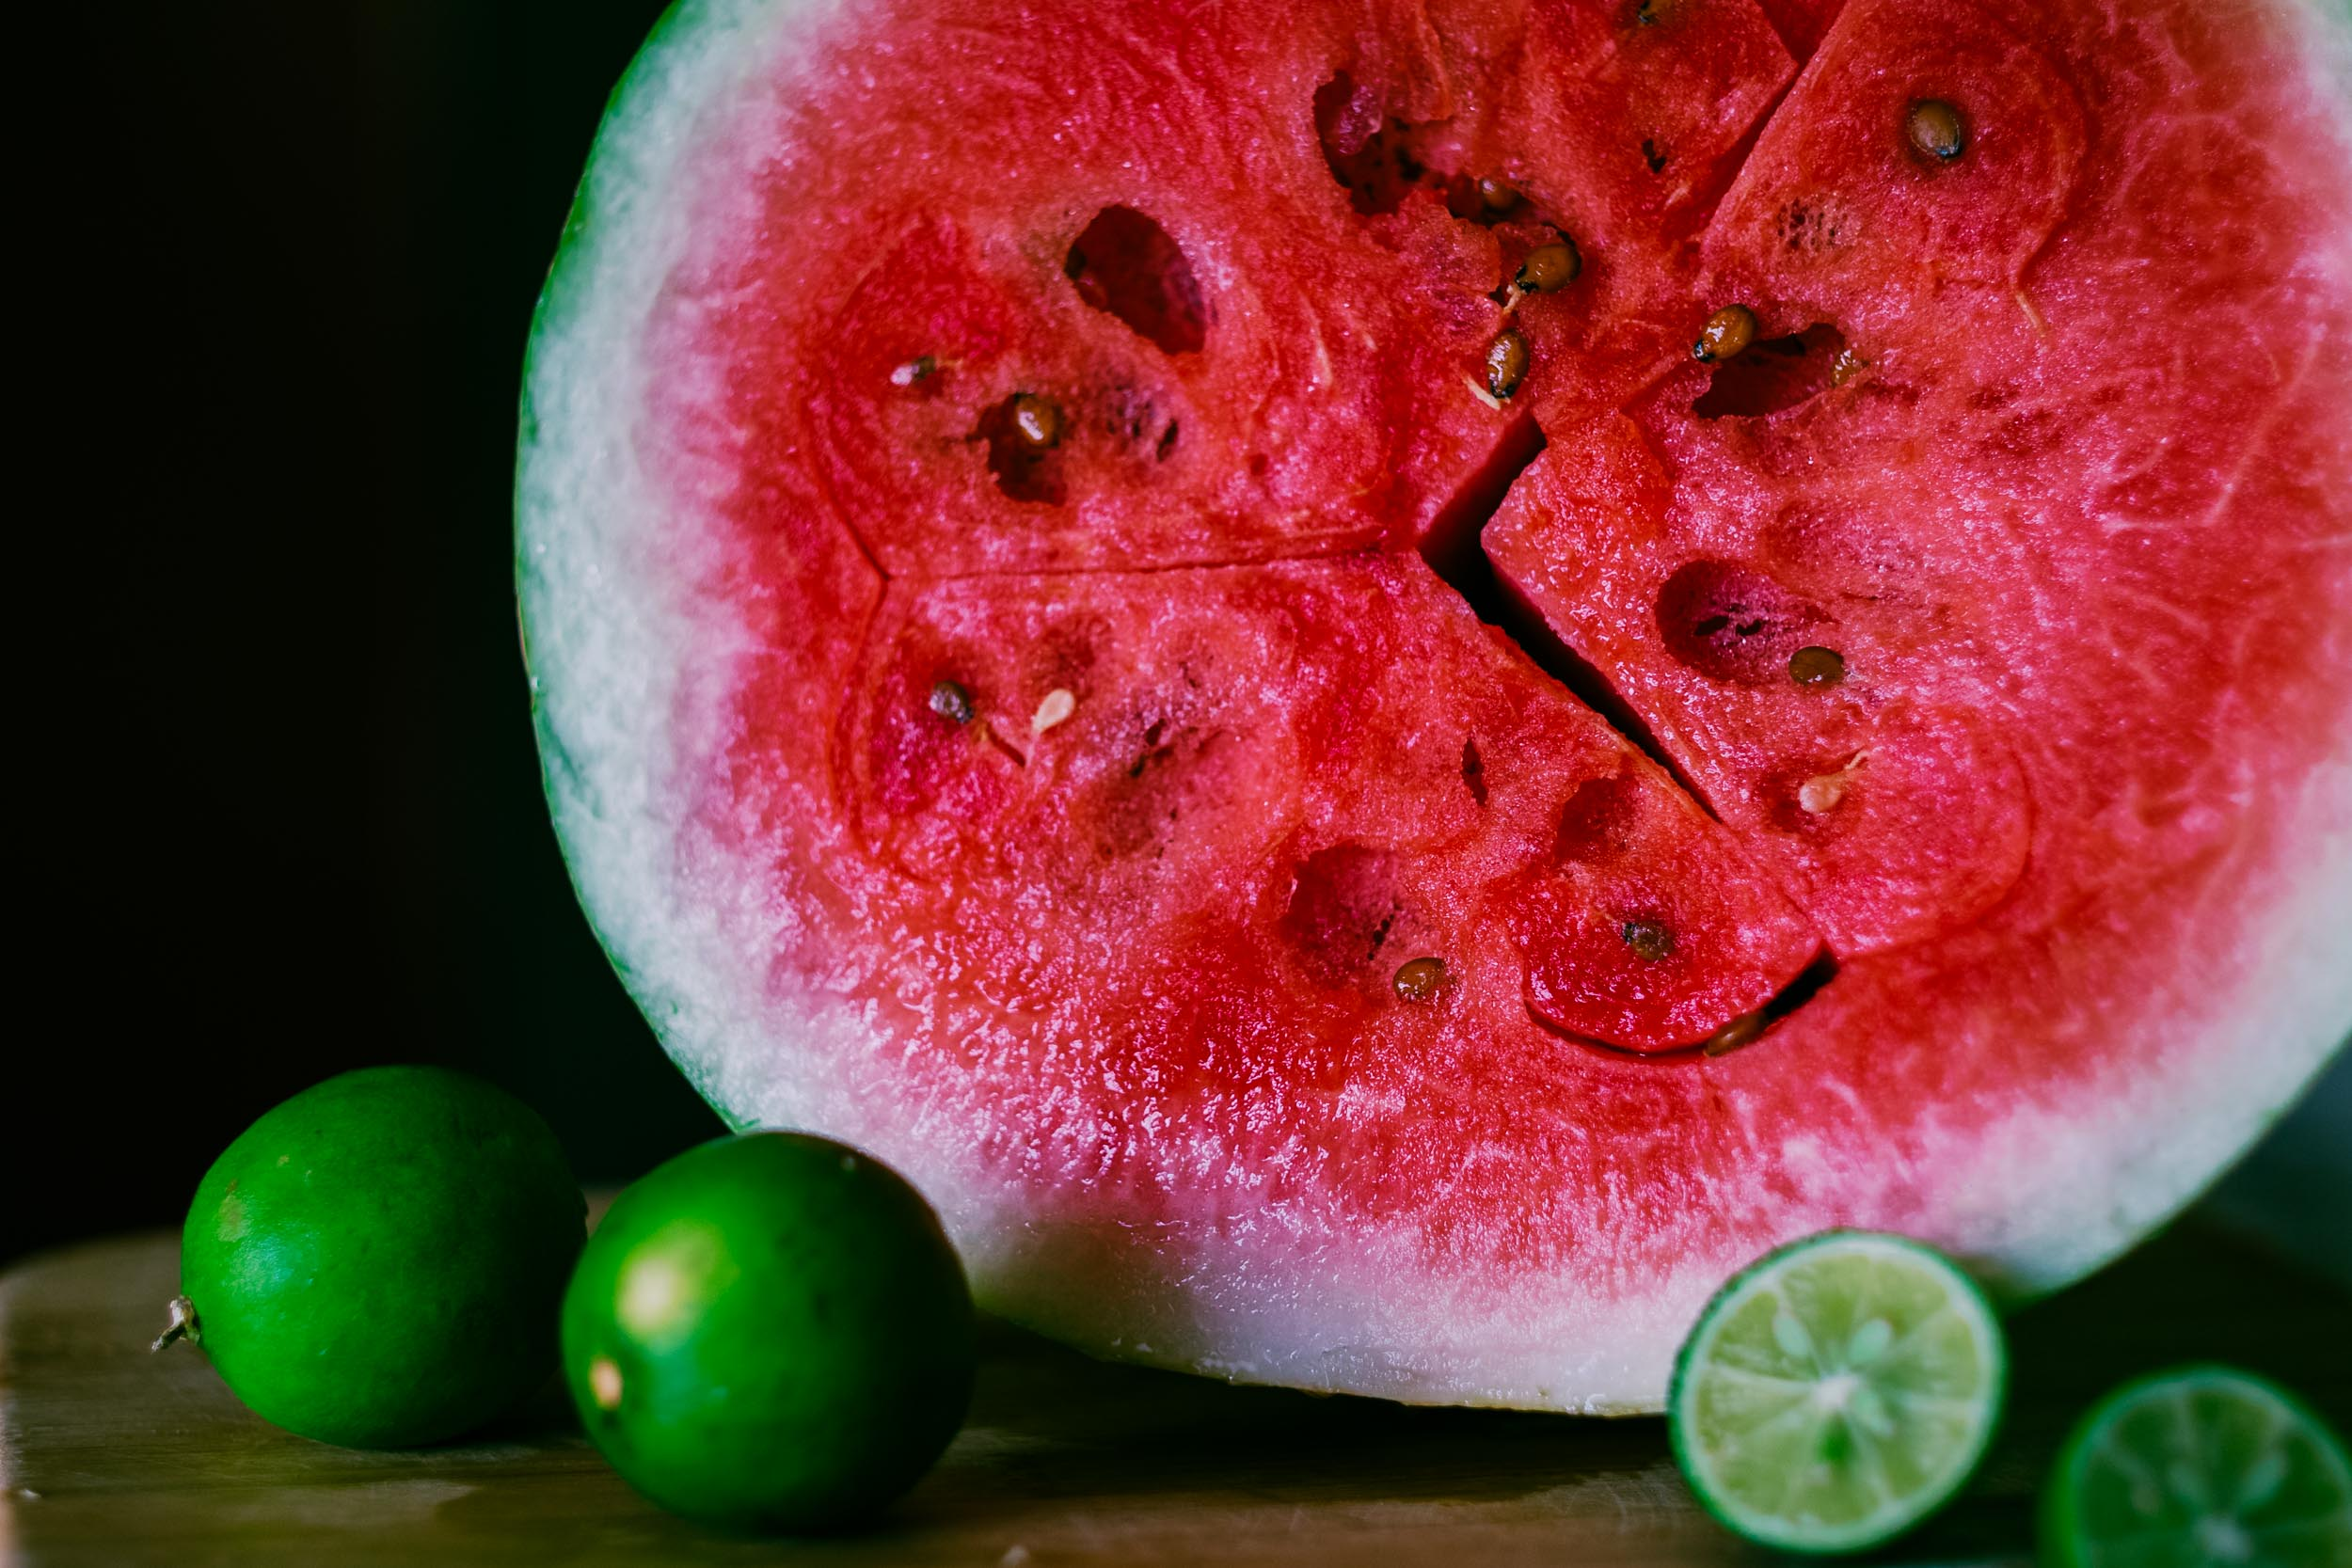 watermelon and limes